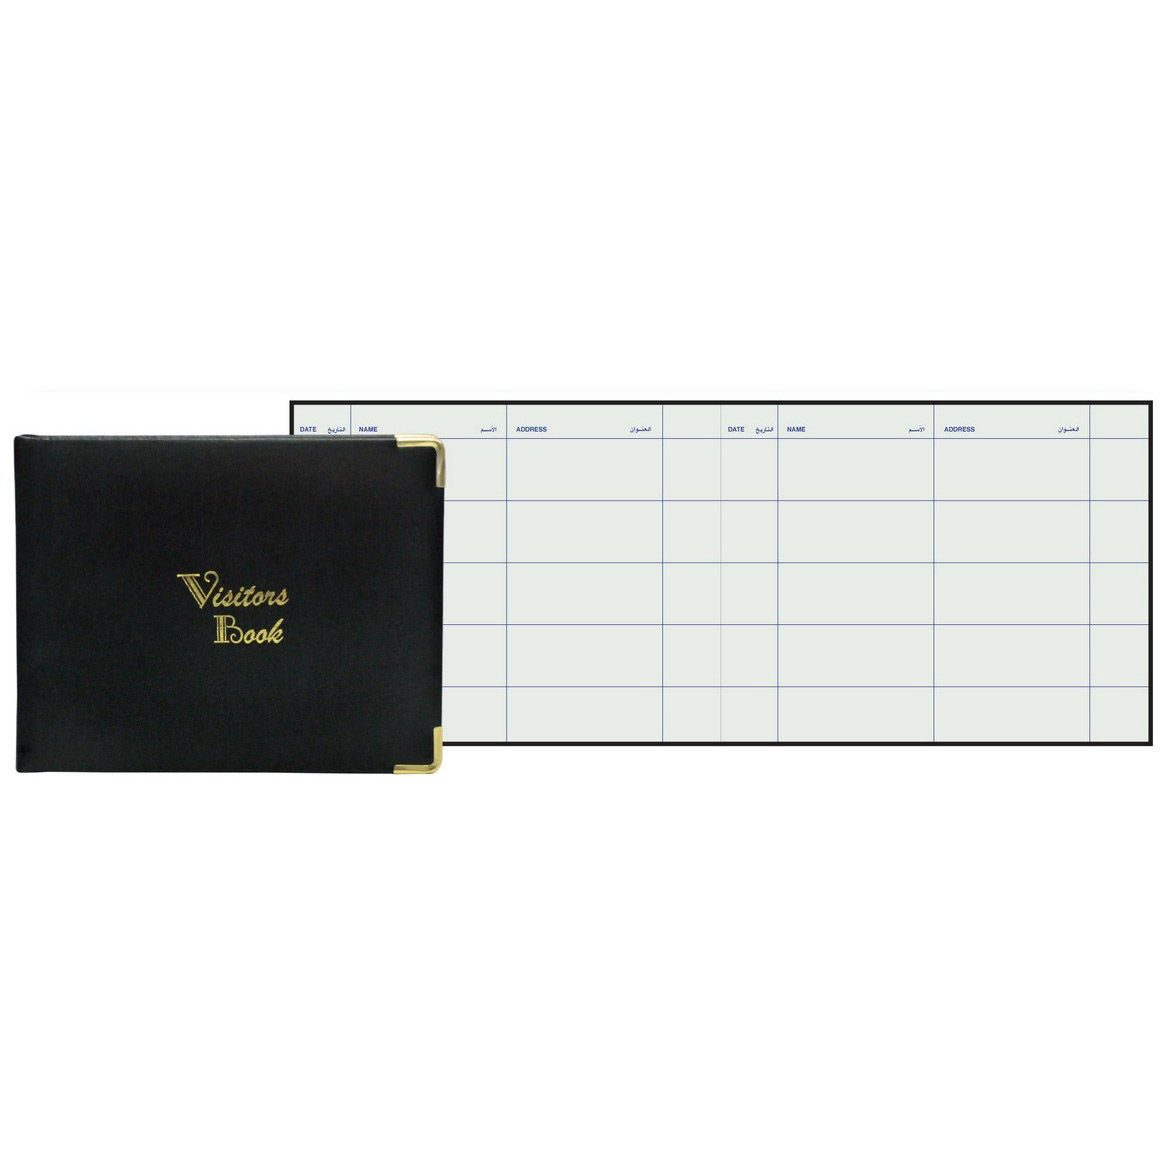 FIS Visitors Log Book 120 sheets 200 x 250 mm - Black (pc)